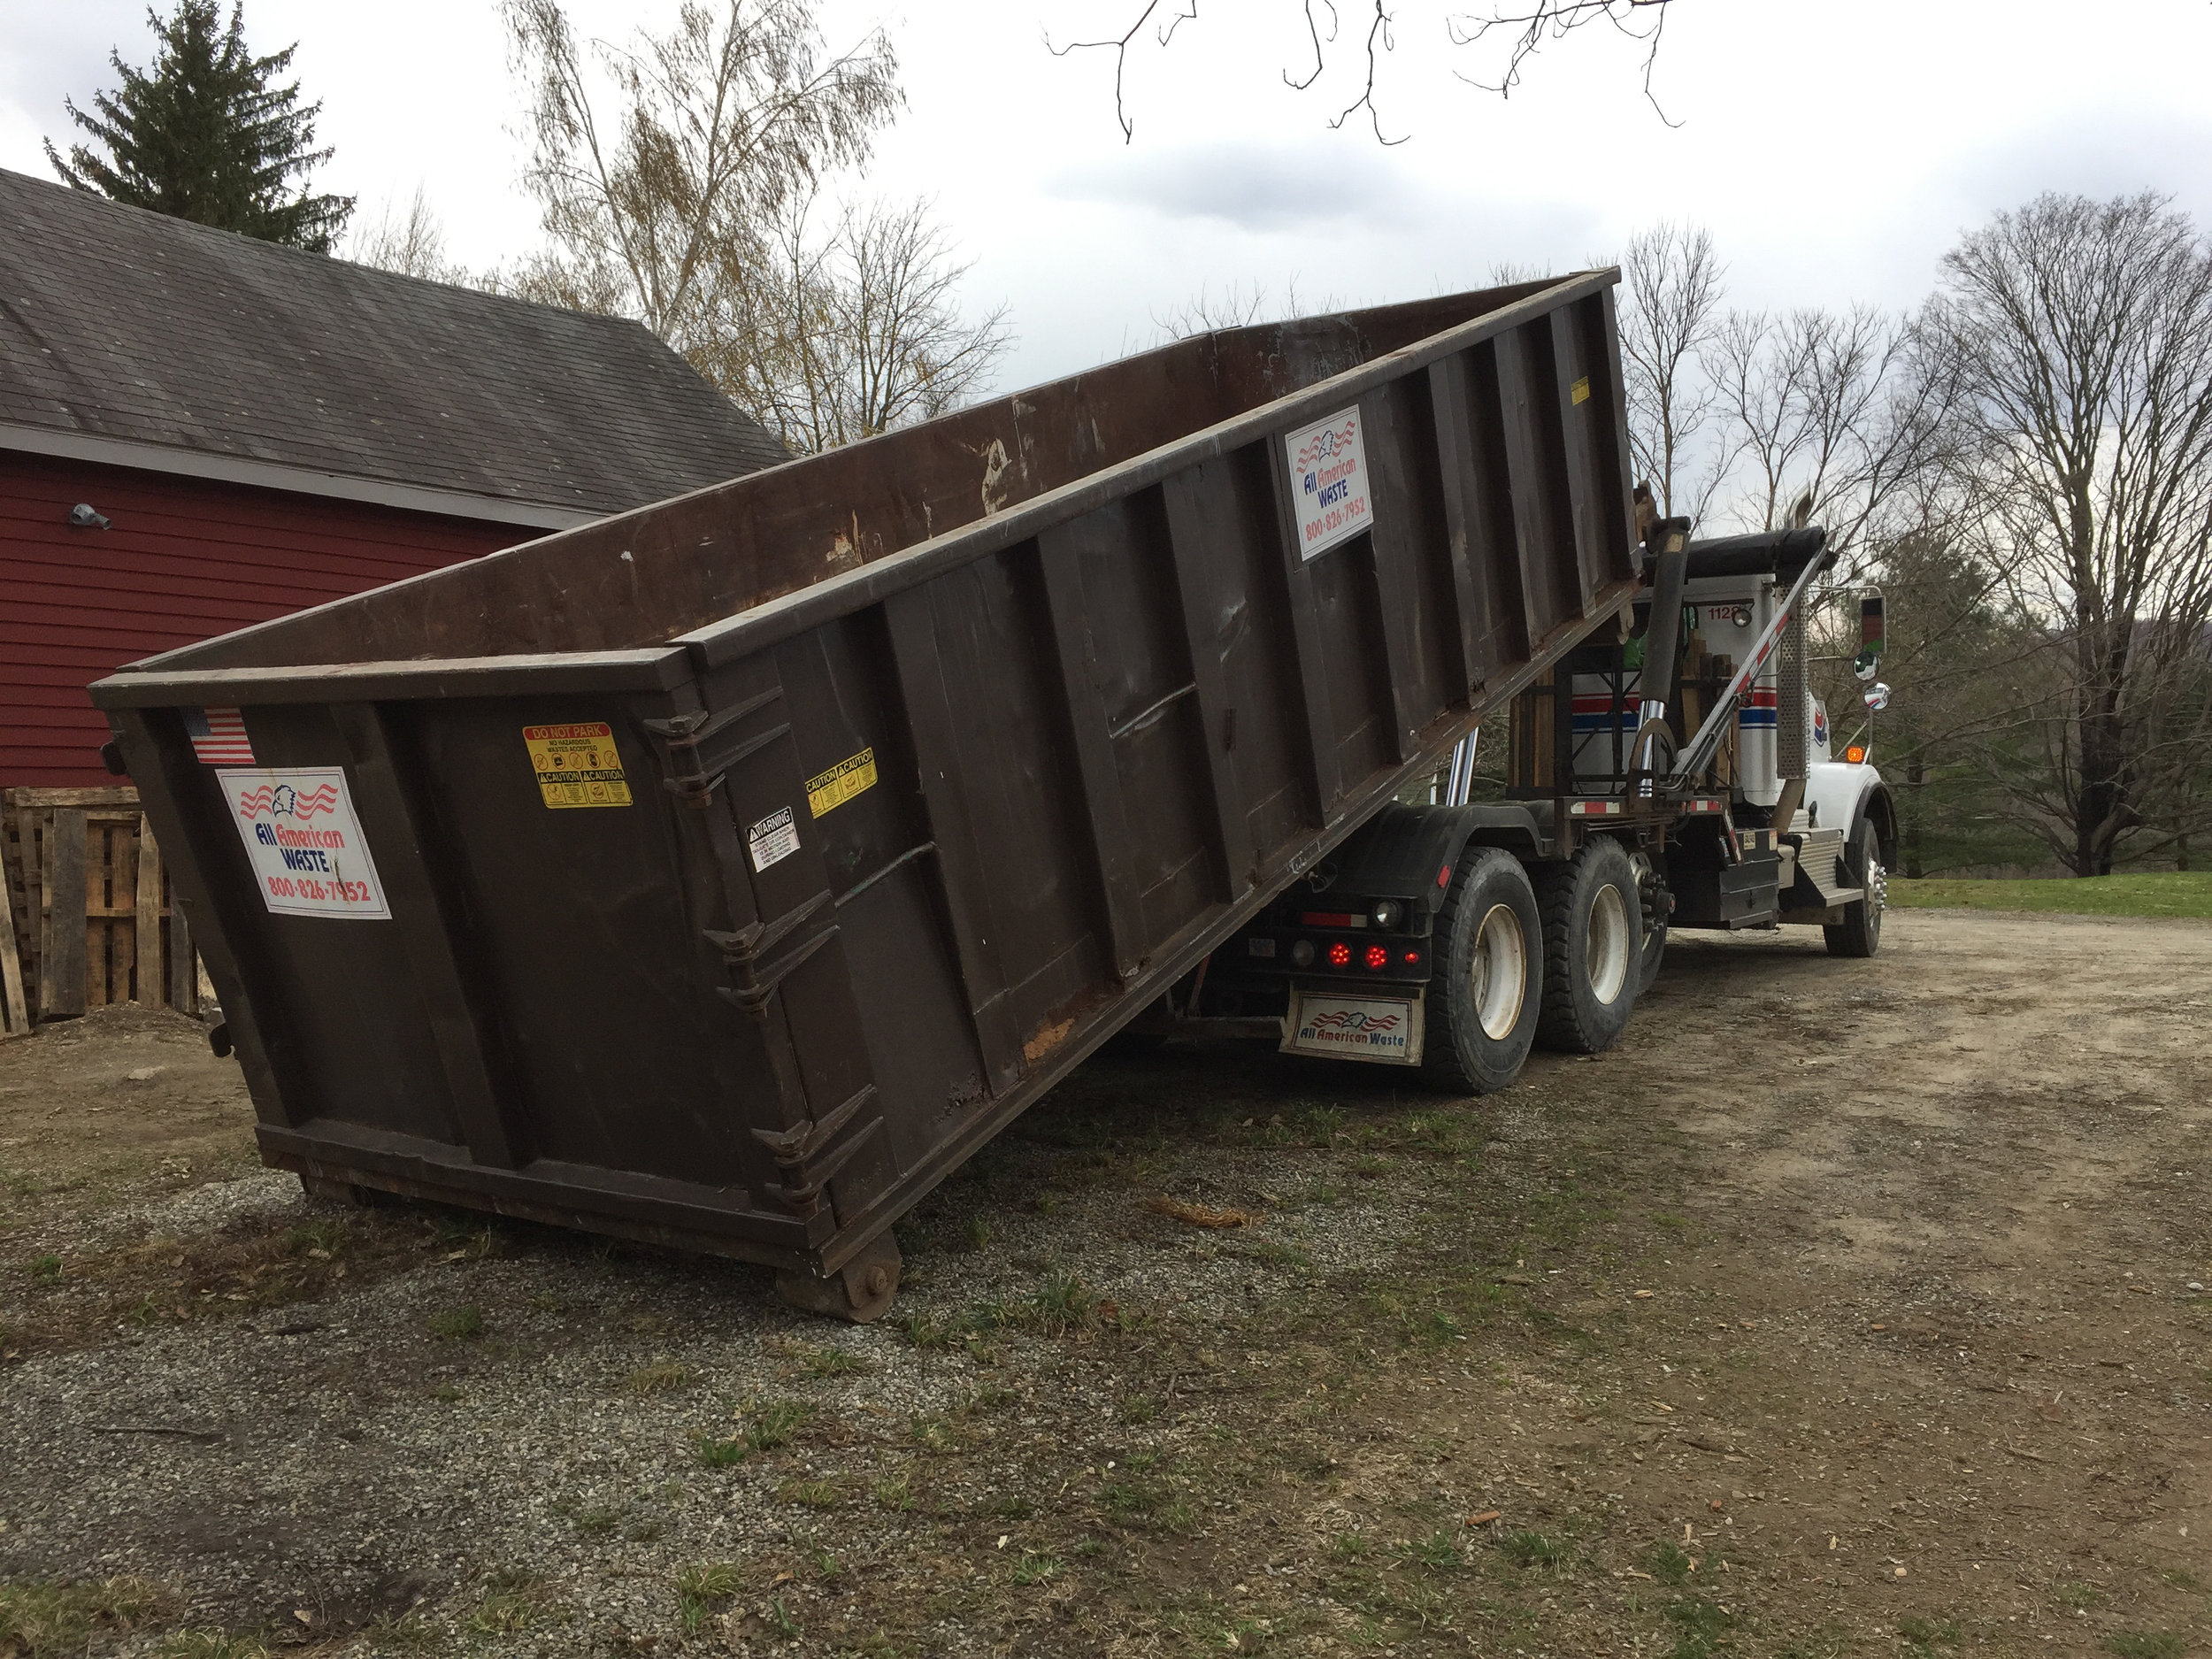 Once the first dumpster came I should have kept filling them until i was done. I couldn't tell you how many we've filled over the years. The lesson learned is keep pitching things out until you're done, don't spread it out over time.